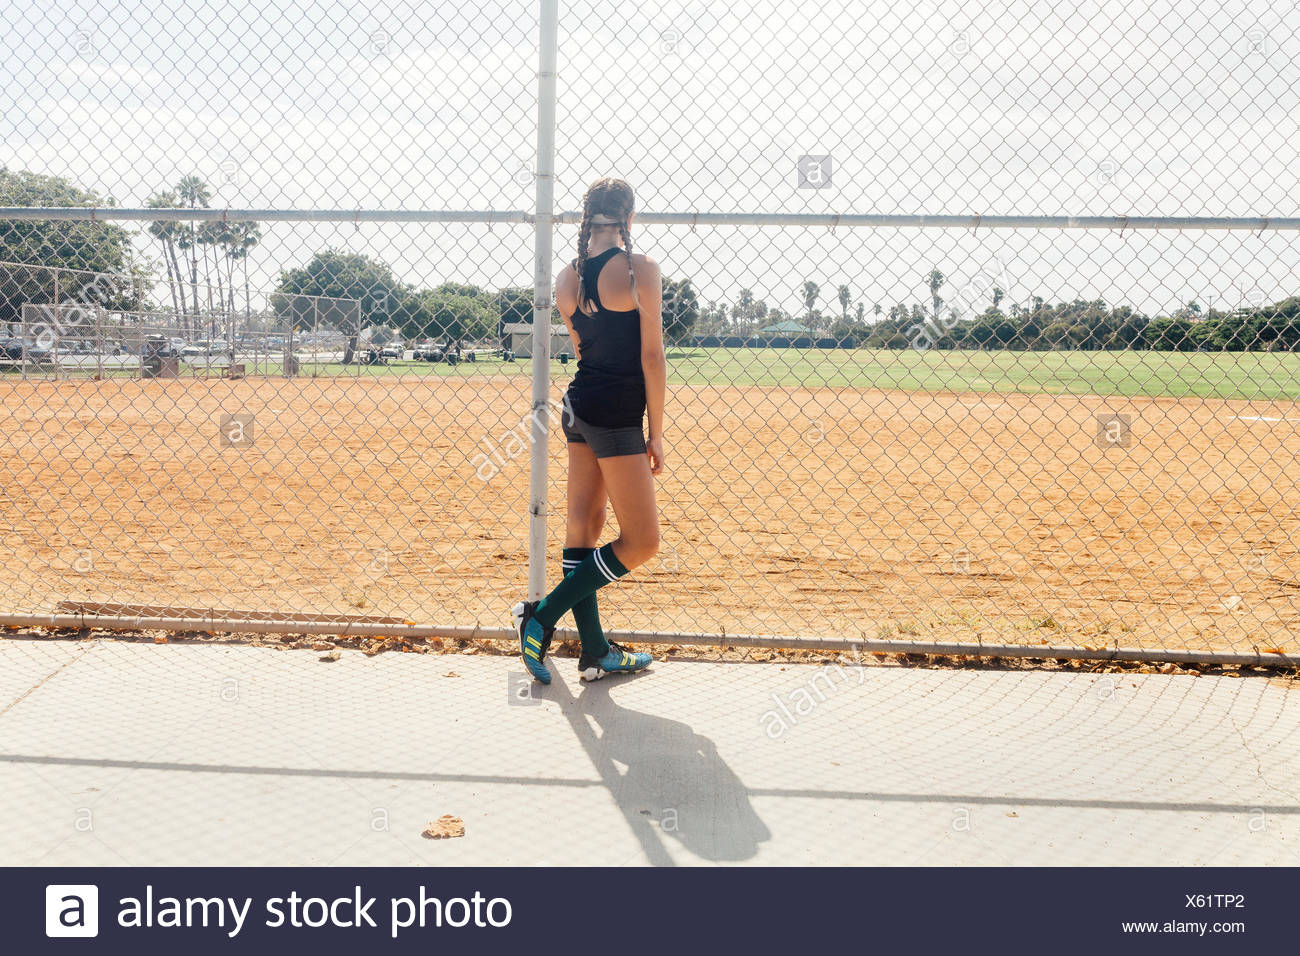 Schoolgirl soccer player at wire fence on school sports field - Stock Image